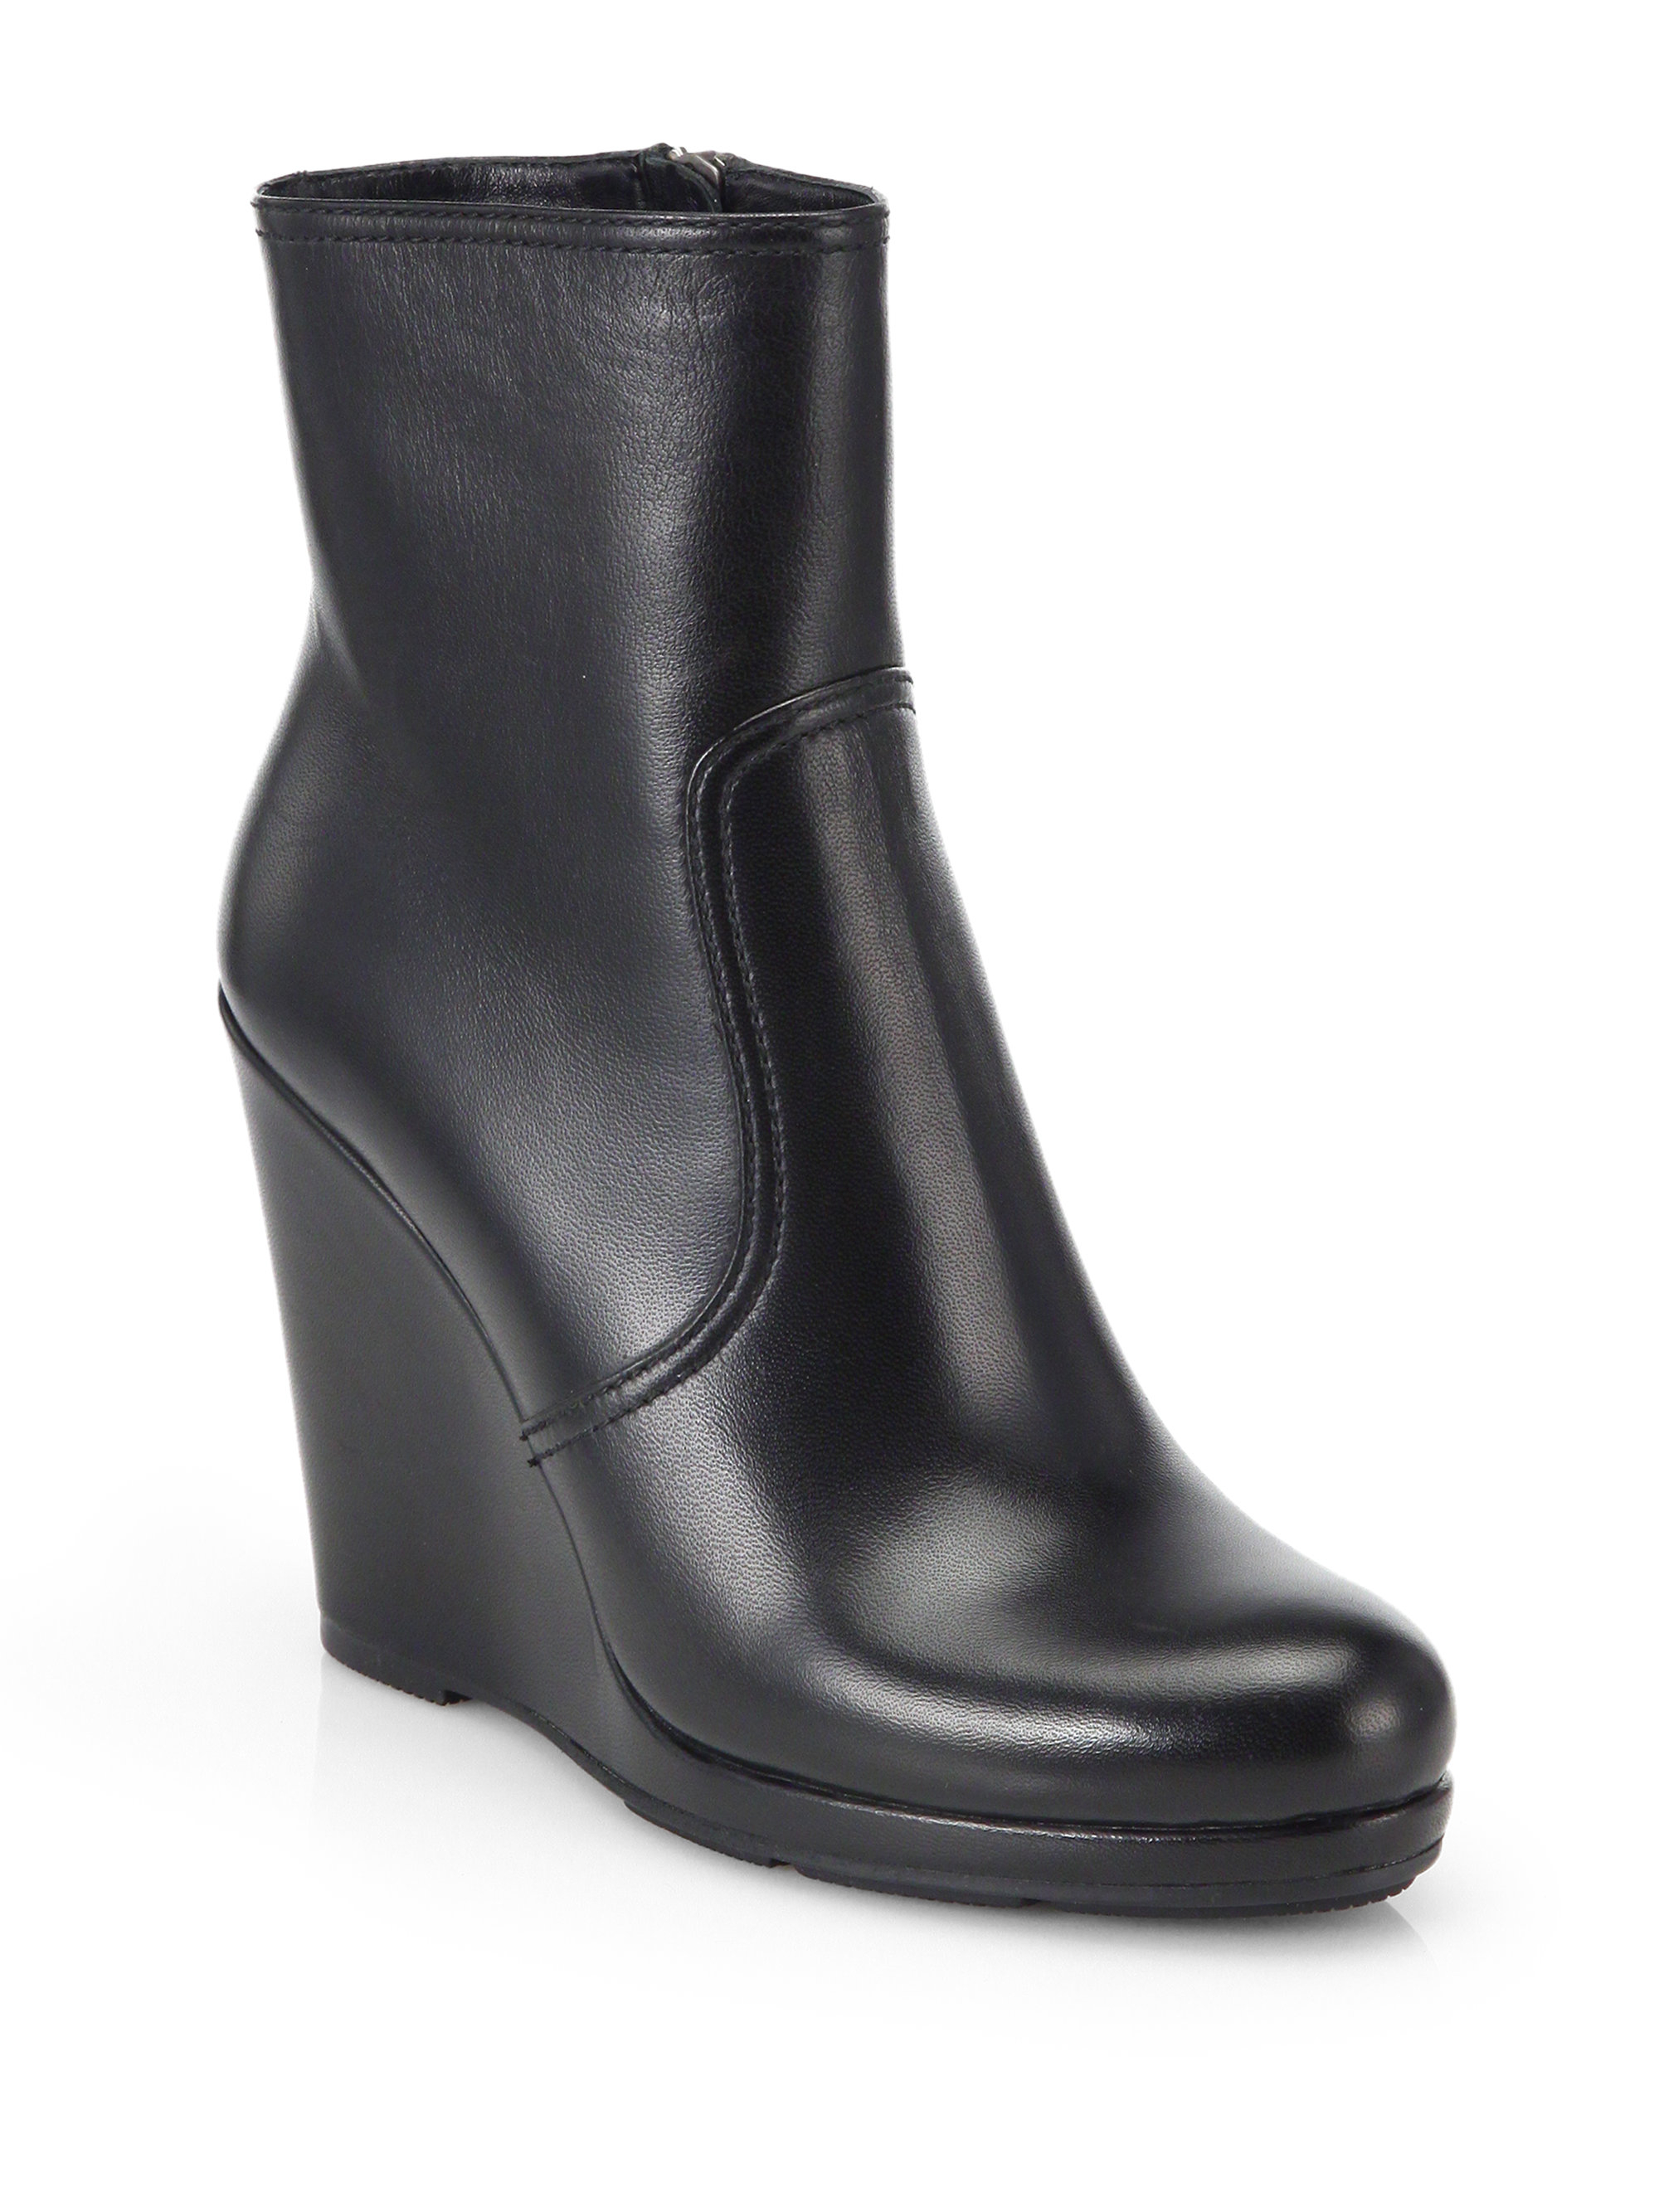 258f134caeda Lyst - Prada Leather Wedge Ankle Boots in Black